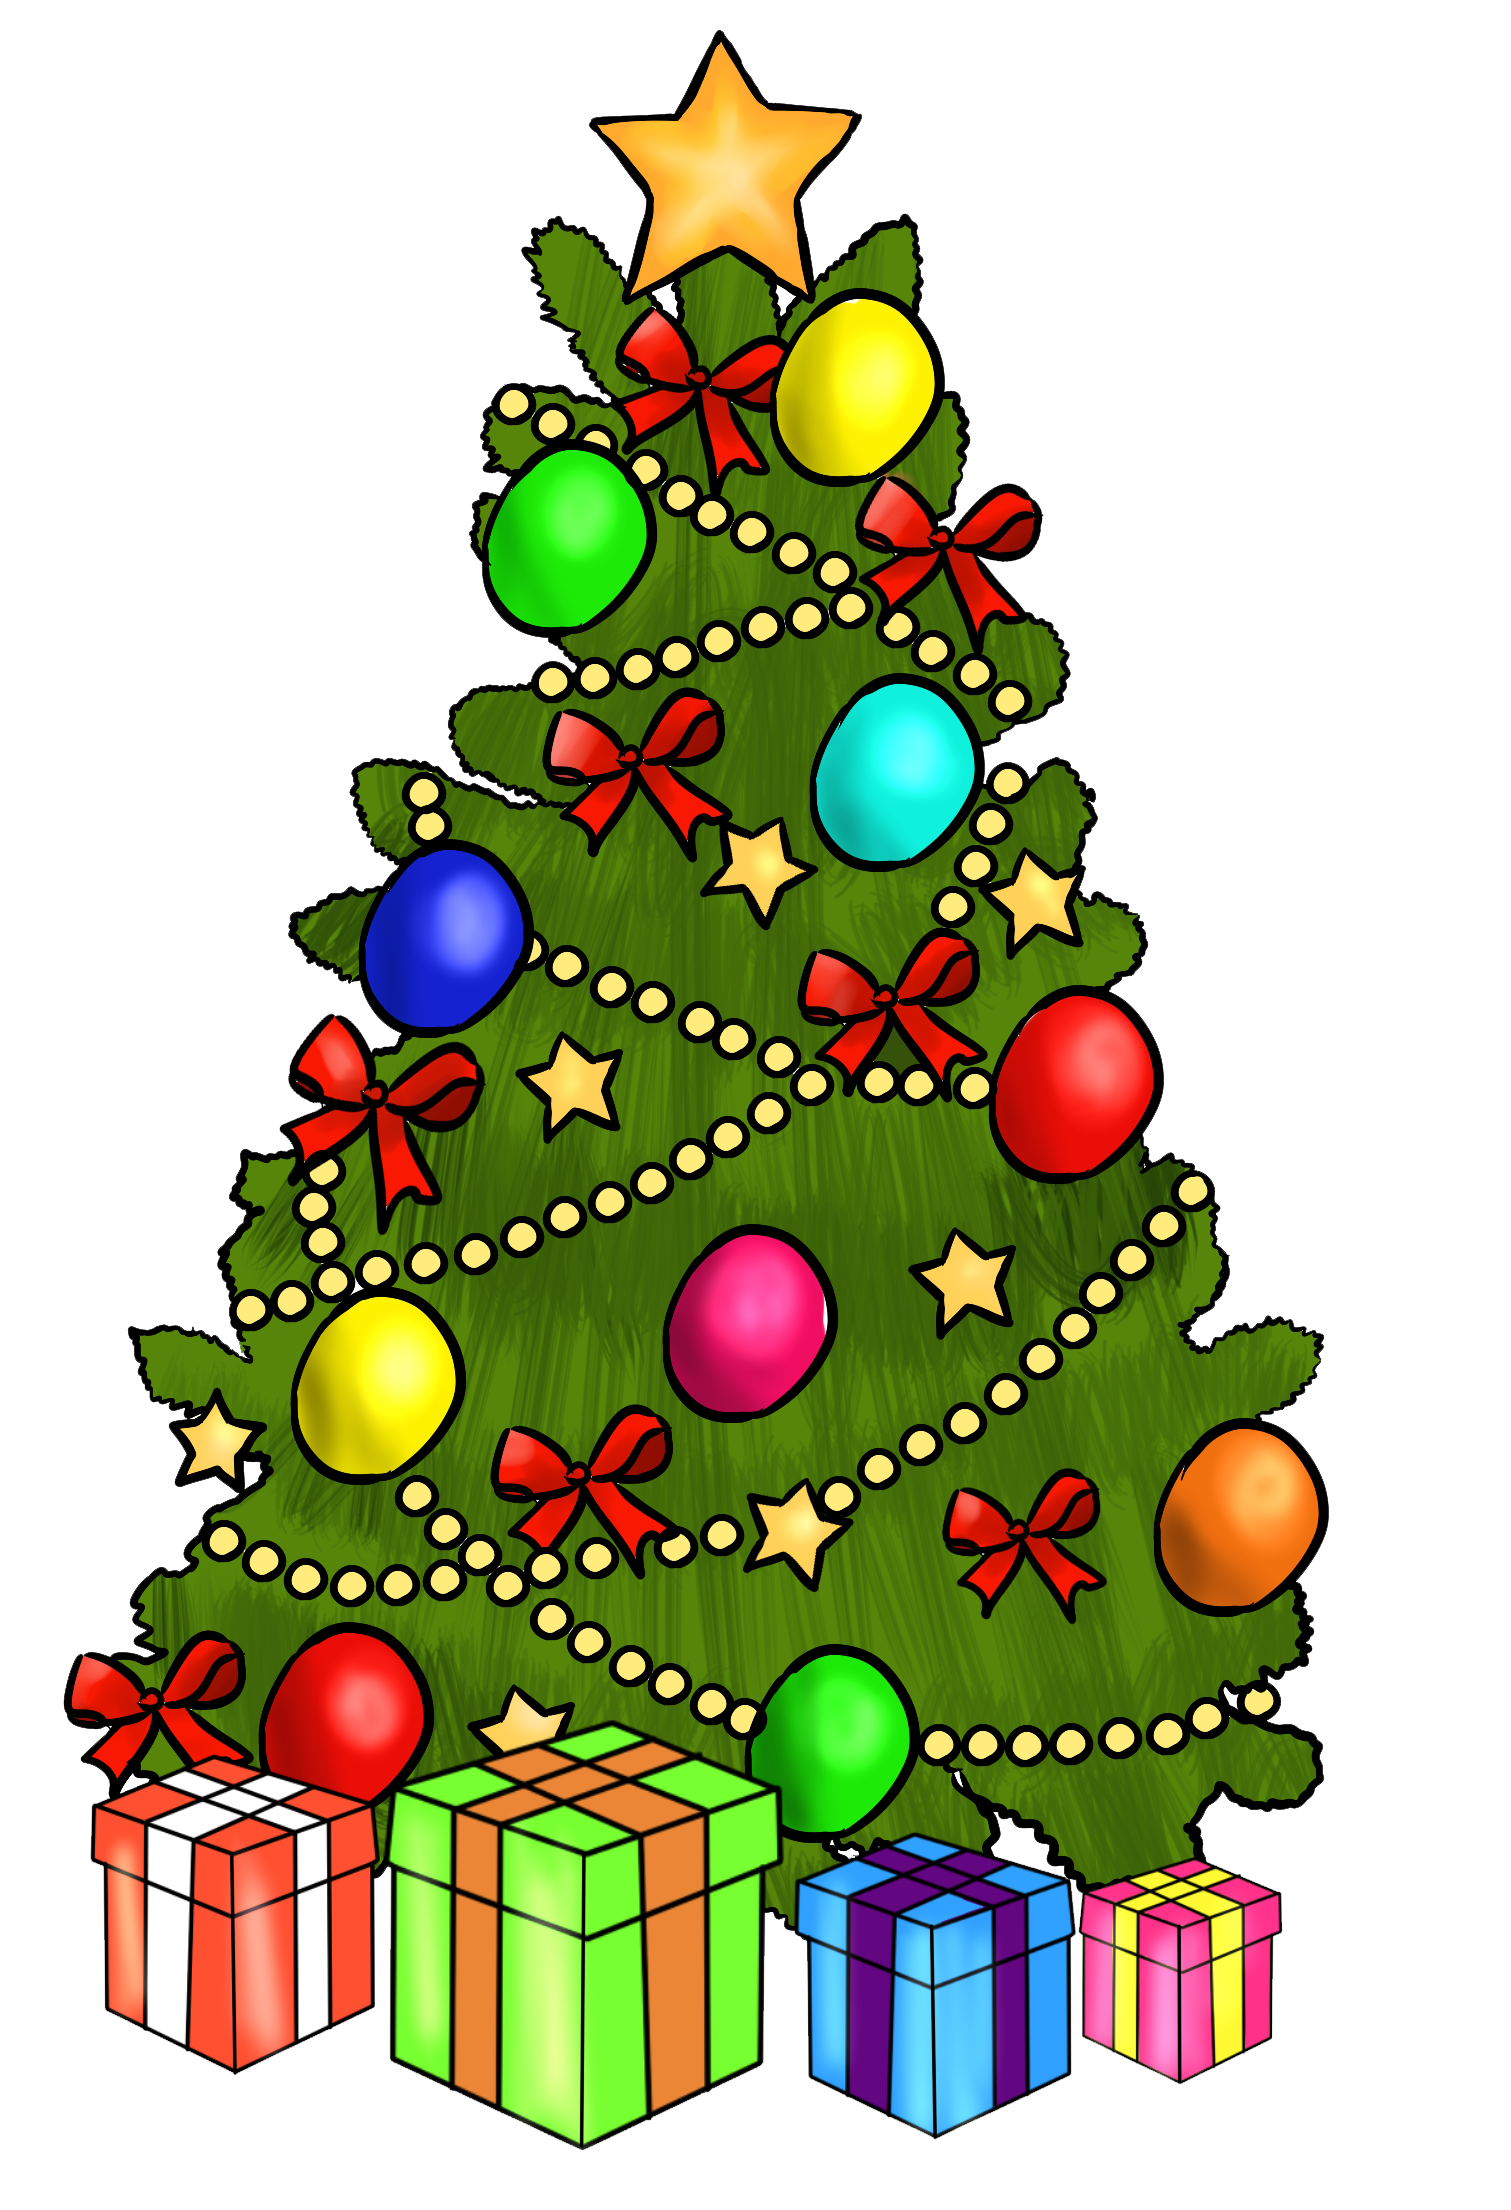 Best free christmas clipart for mac 22803 for X mas decorations png